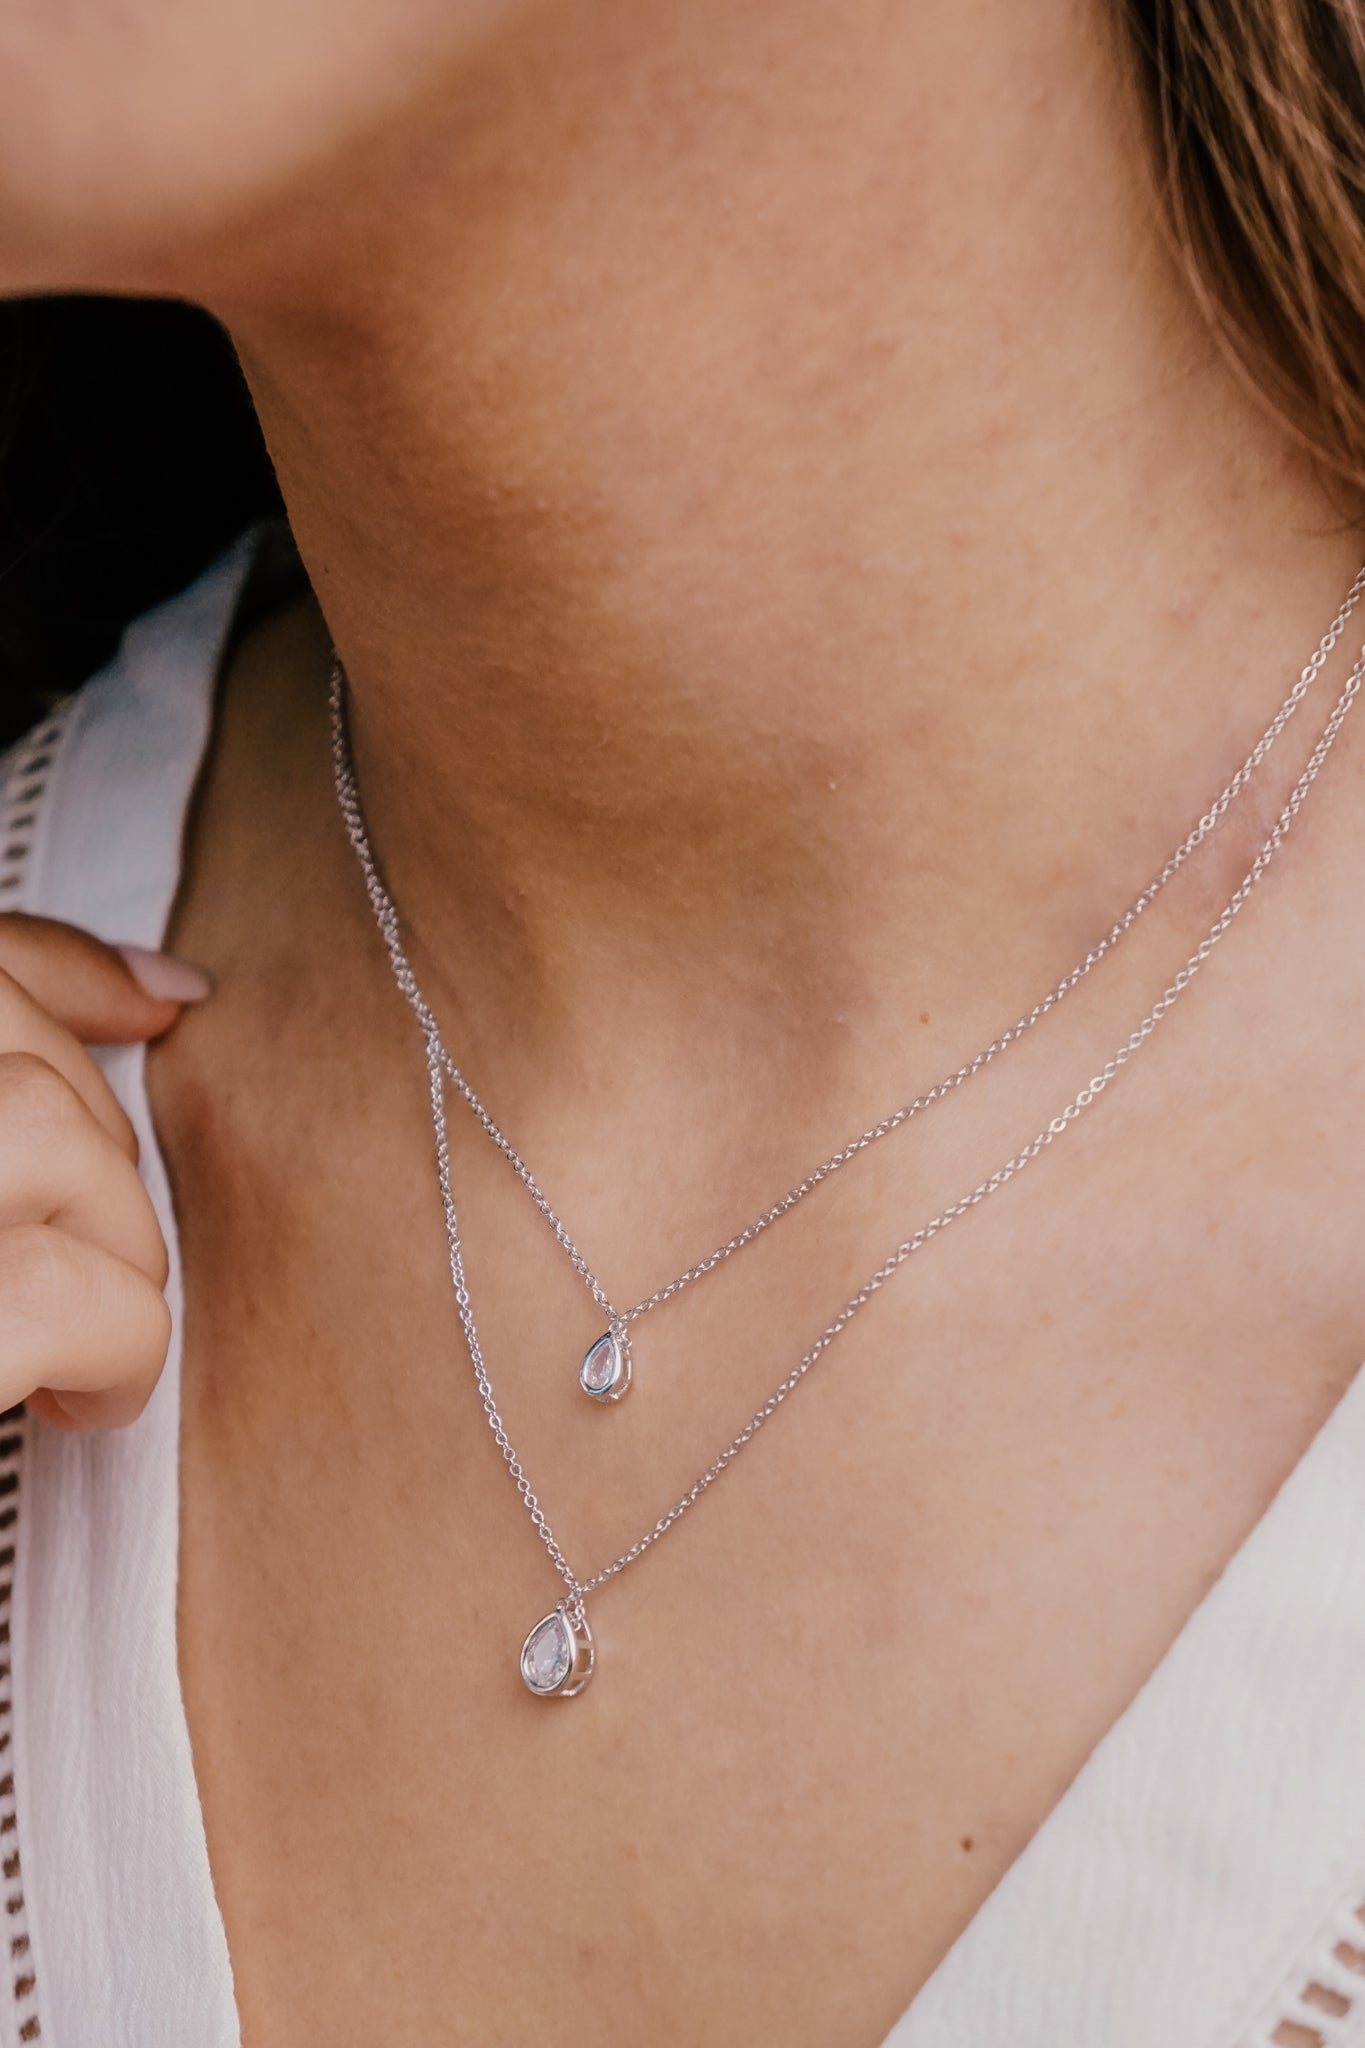 Layered Dainty Silver Teardrop Necklace